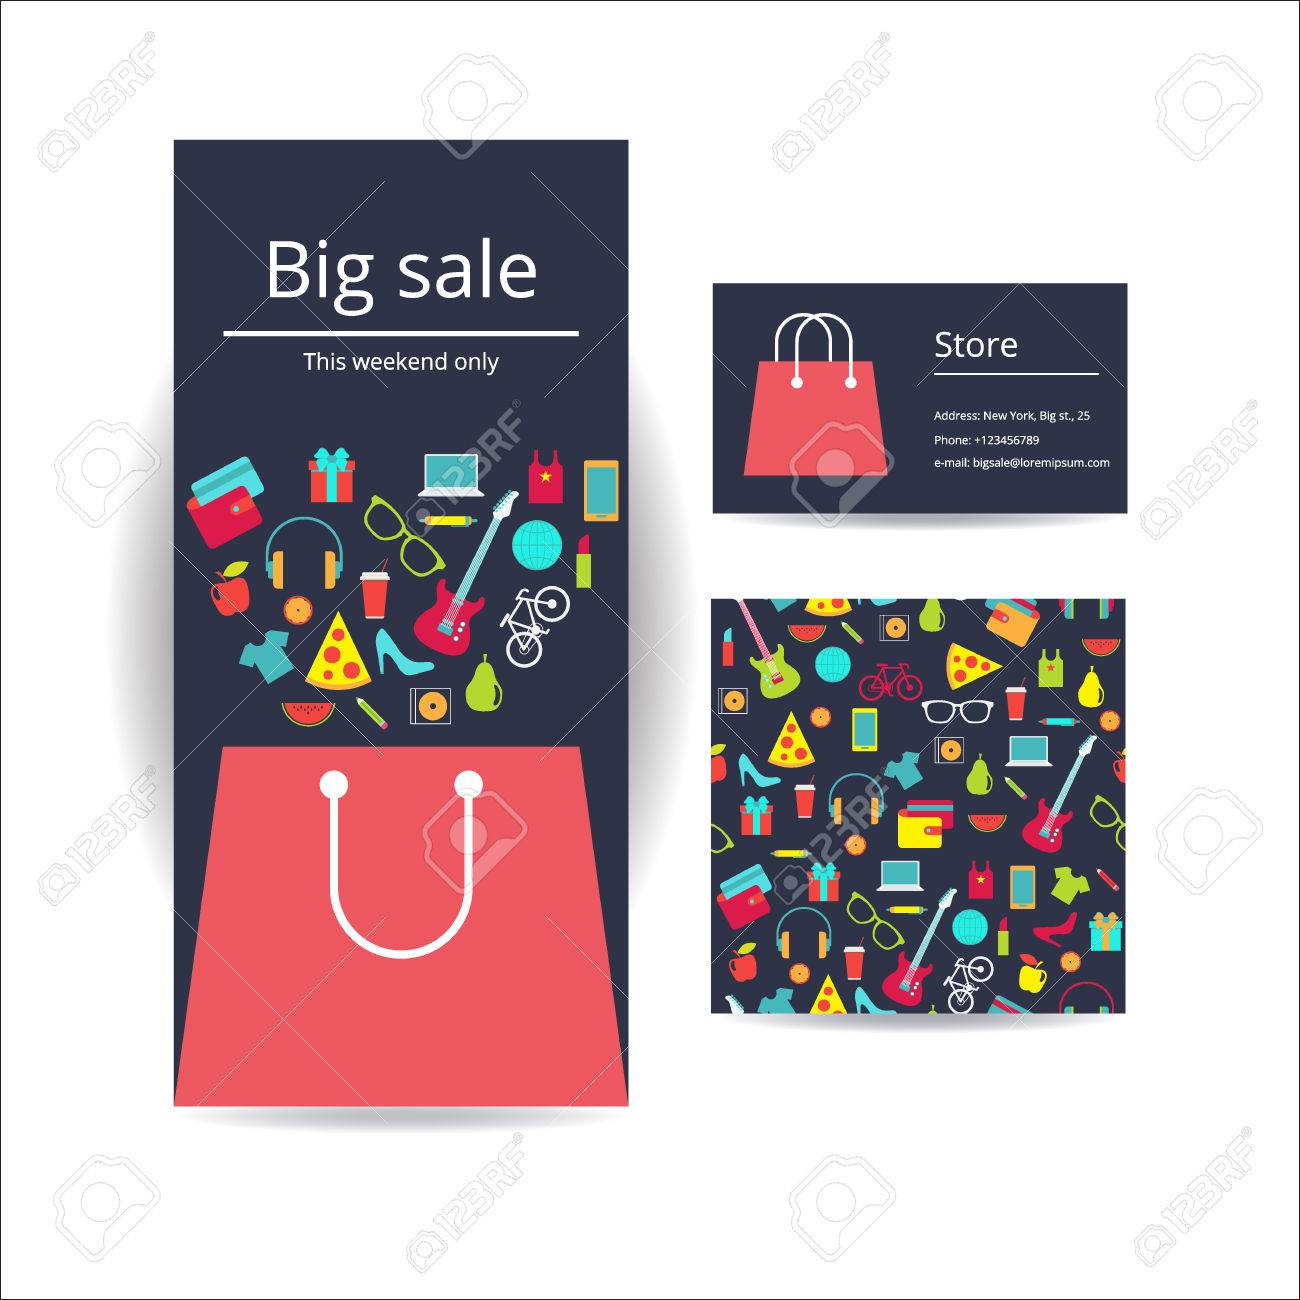 Business Brochure Flyer Banner, Business Card And Card With Seamless ...